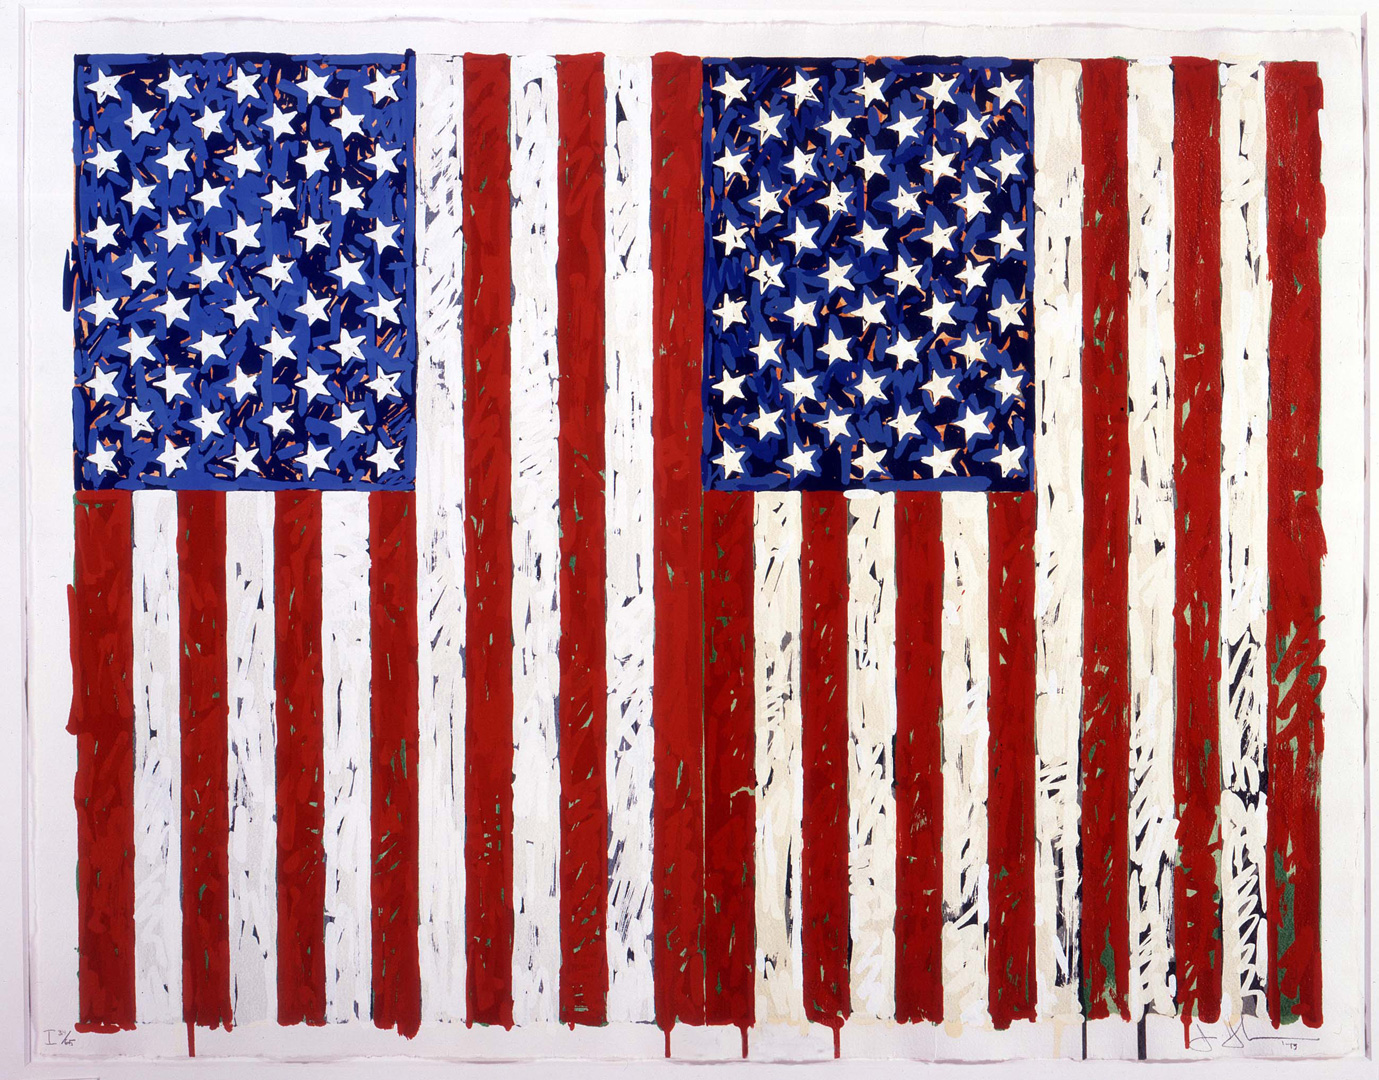 Jasper Johns - Flags I, 1973, silkscreen, 31 screens